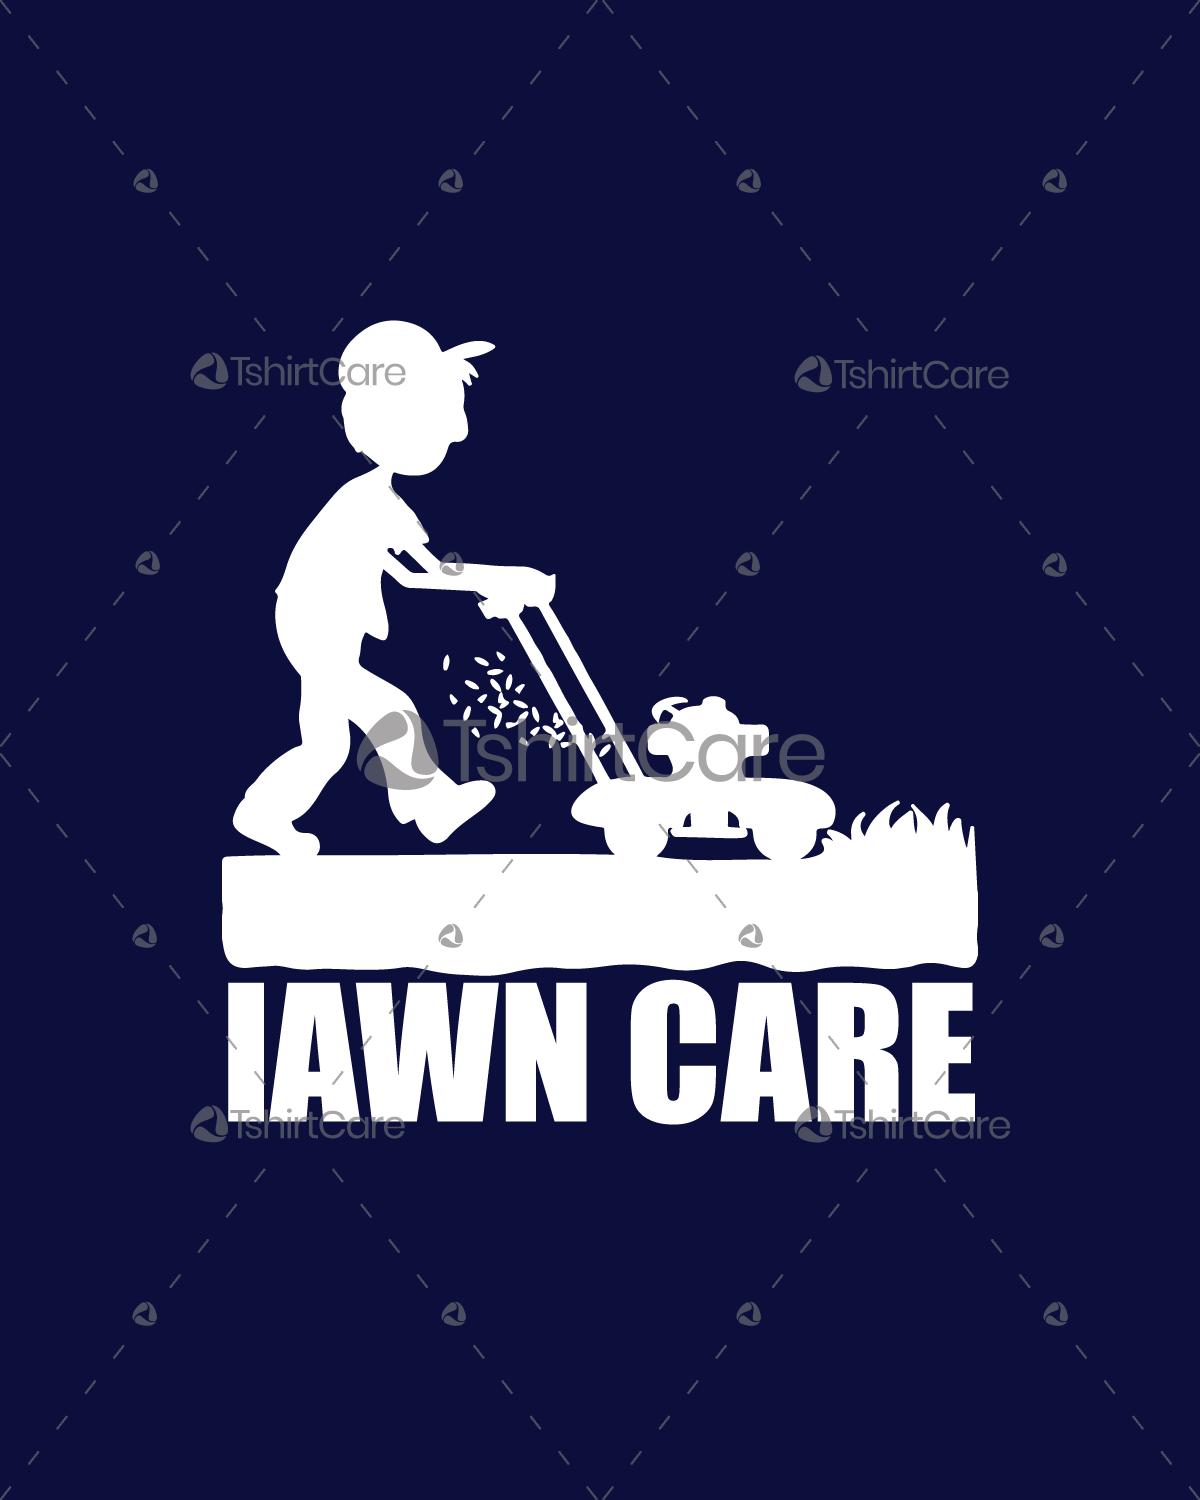 Lawn care t shirt shirt design landscaping business t for Lawn care t shirt designs